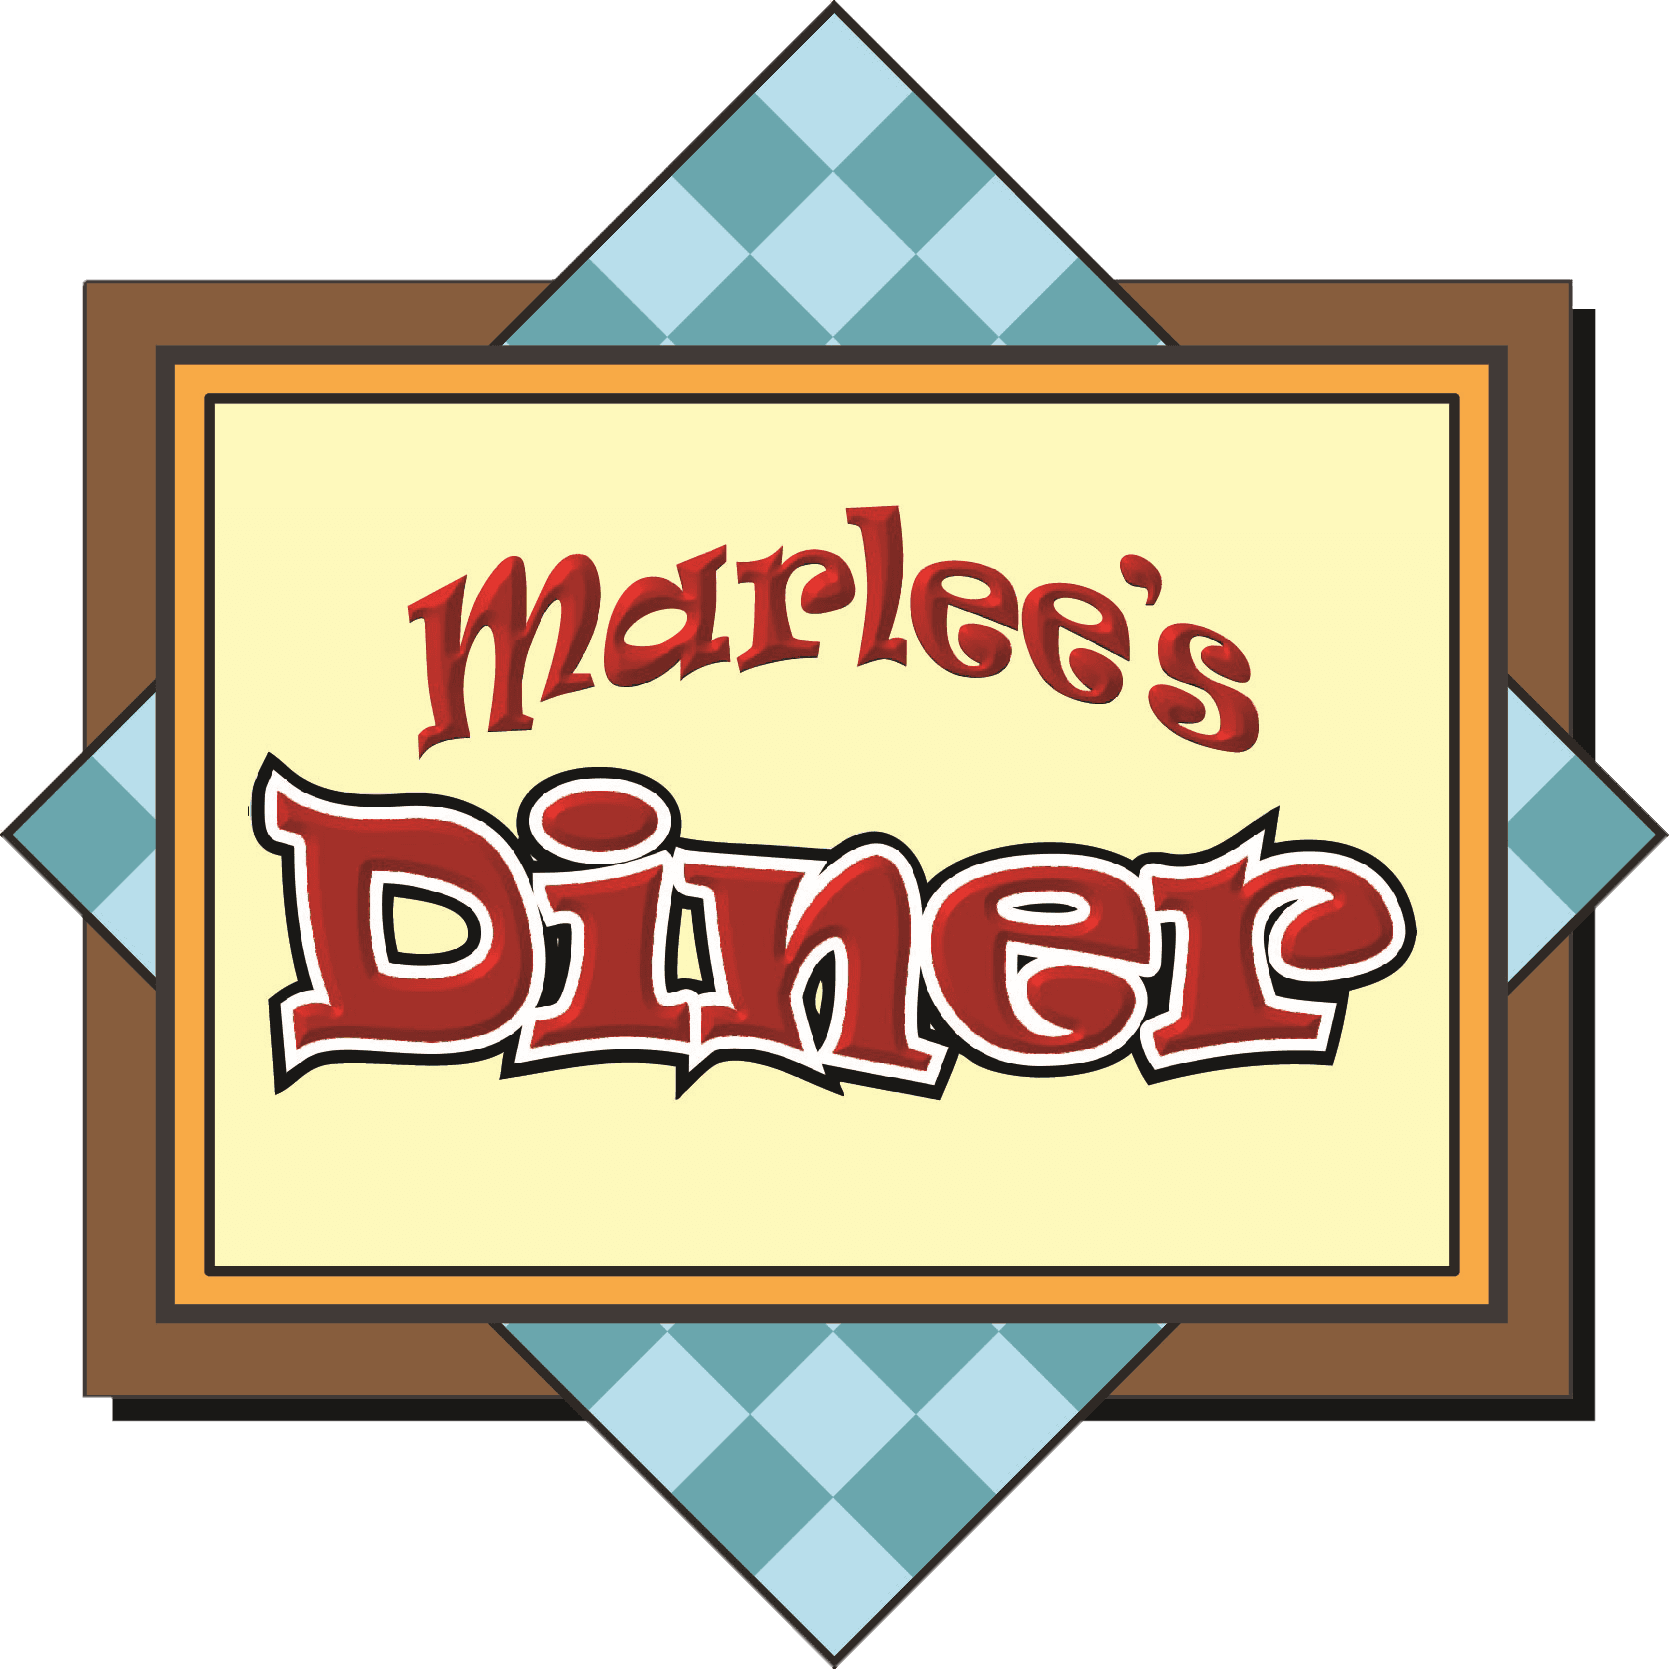 Diner clipart fish. Marlee s bakery welcome